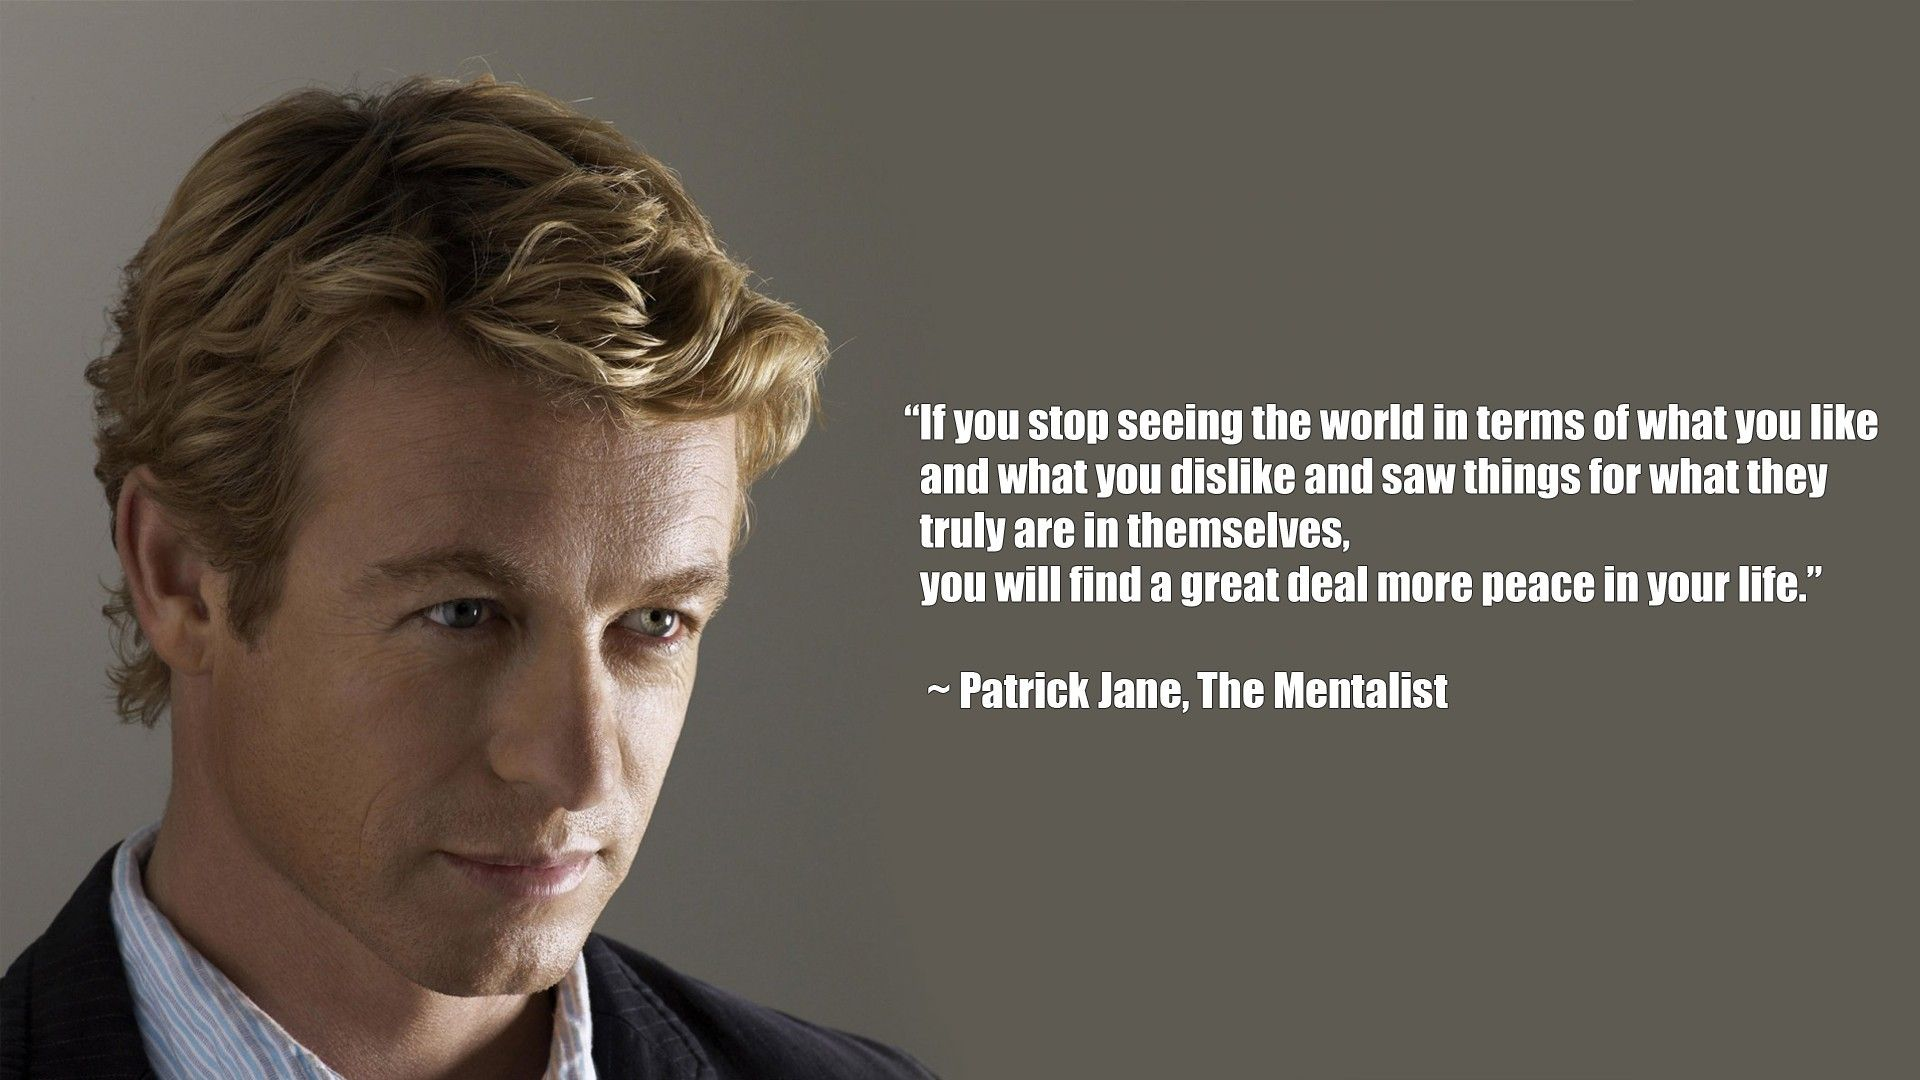 Pin By Jenny Laforest On The Mentalist The Mentalist Patrick Jane Simon Baker